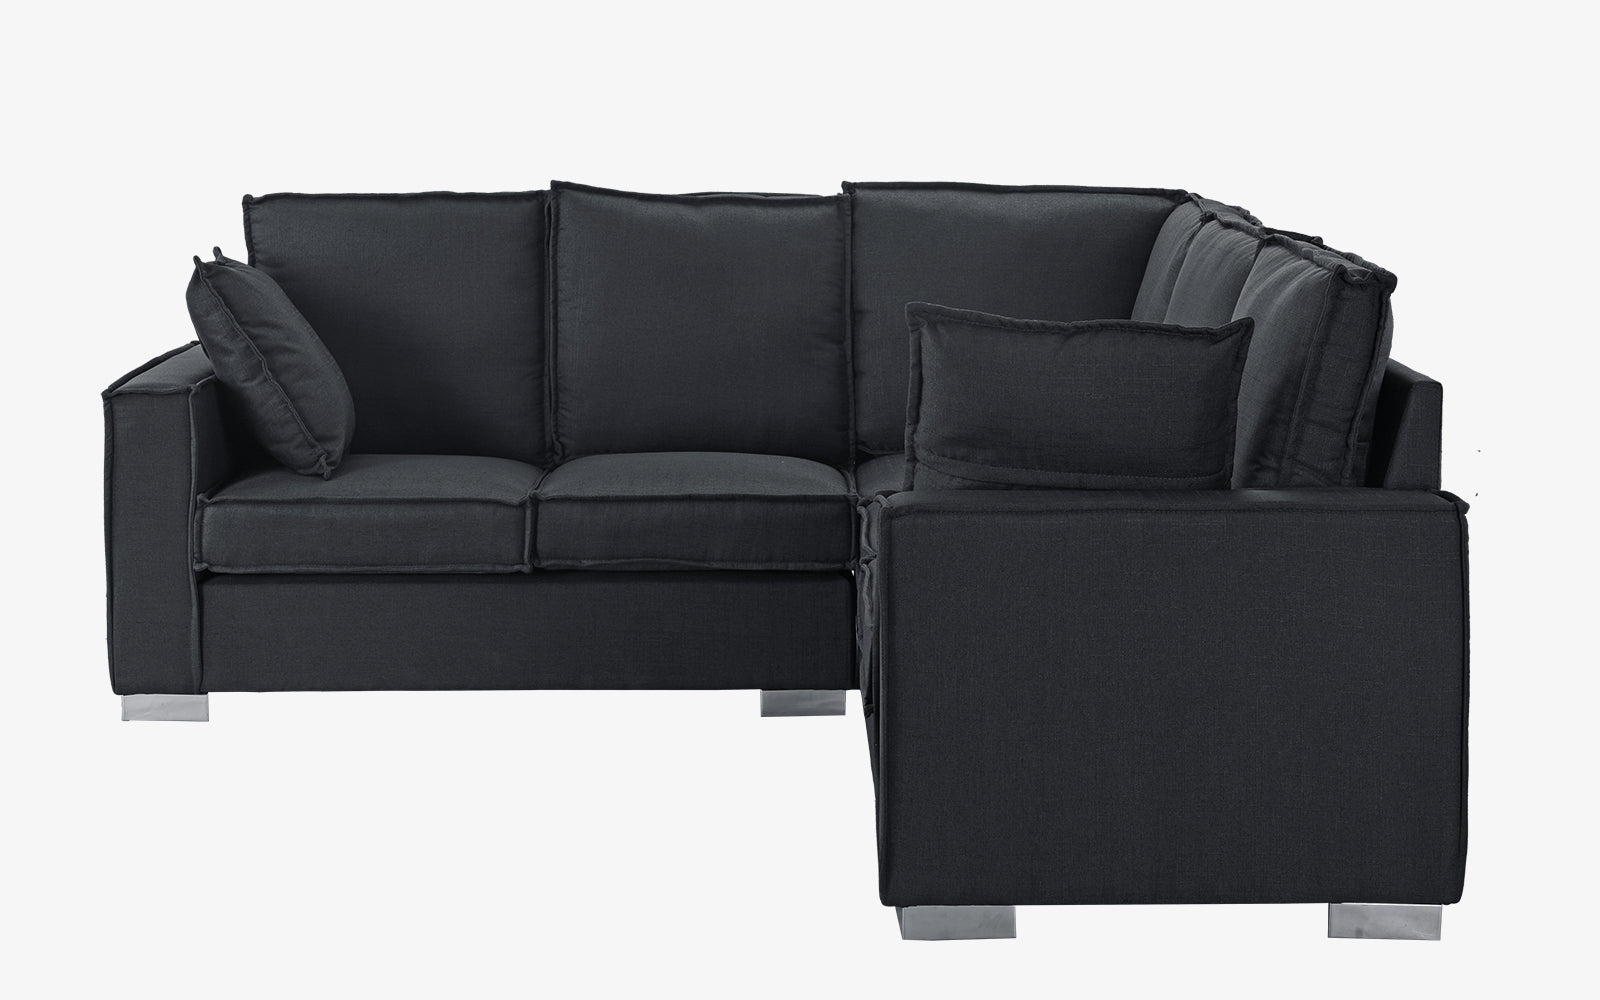 Turia Modern L-Shape Sectional Sofa